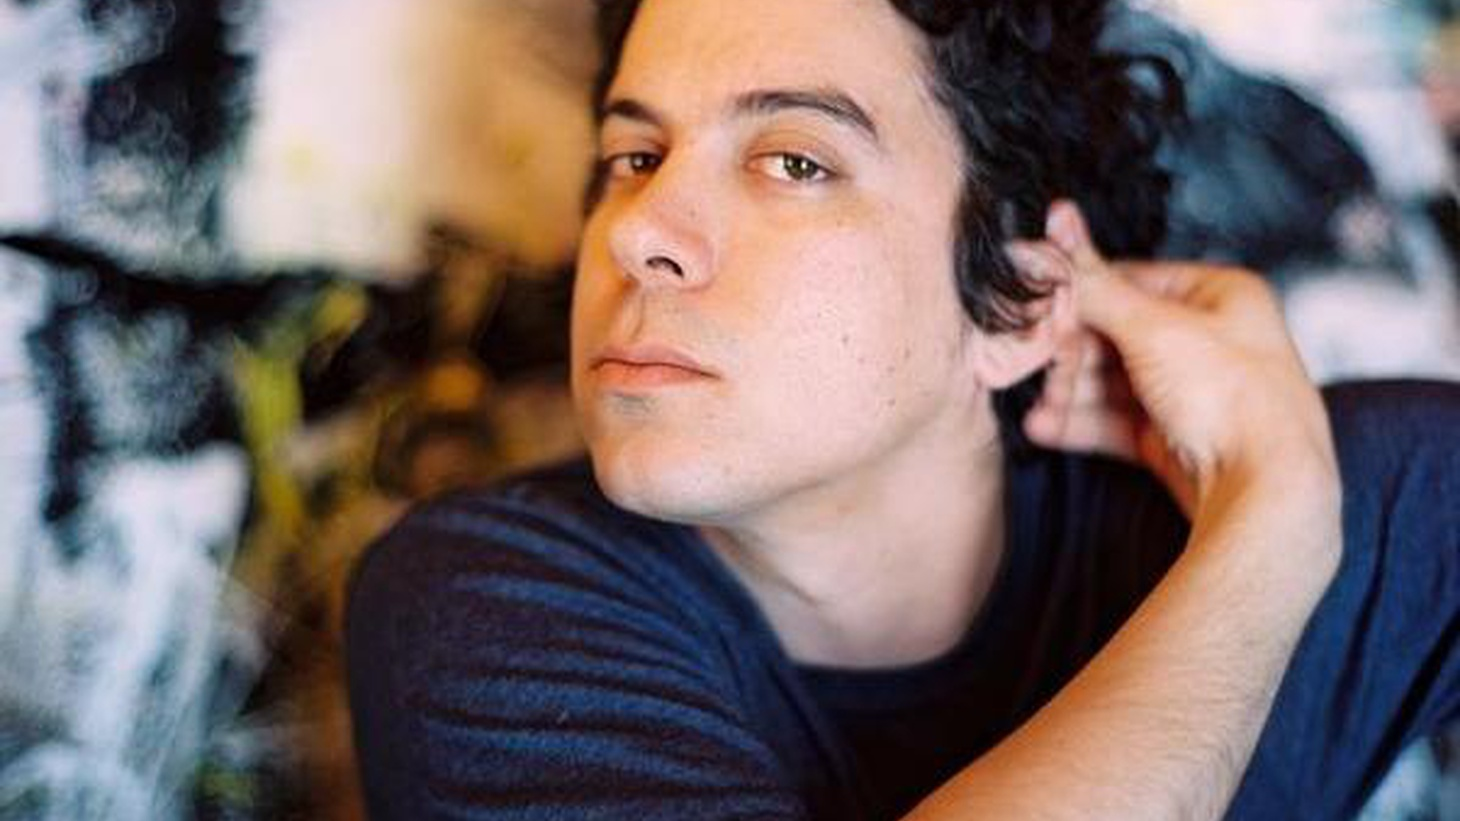 Acclaimed guitarist and songwriter M. Ward performs songs from his latest release, Hold Time, on Morning Becomes Eclectic at 11:15am.